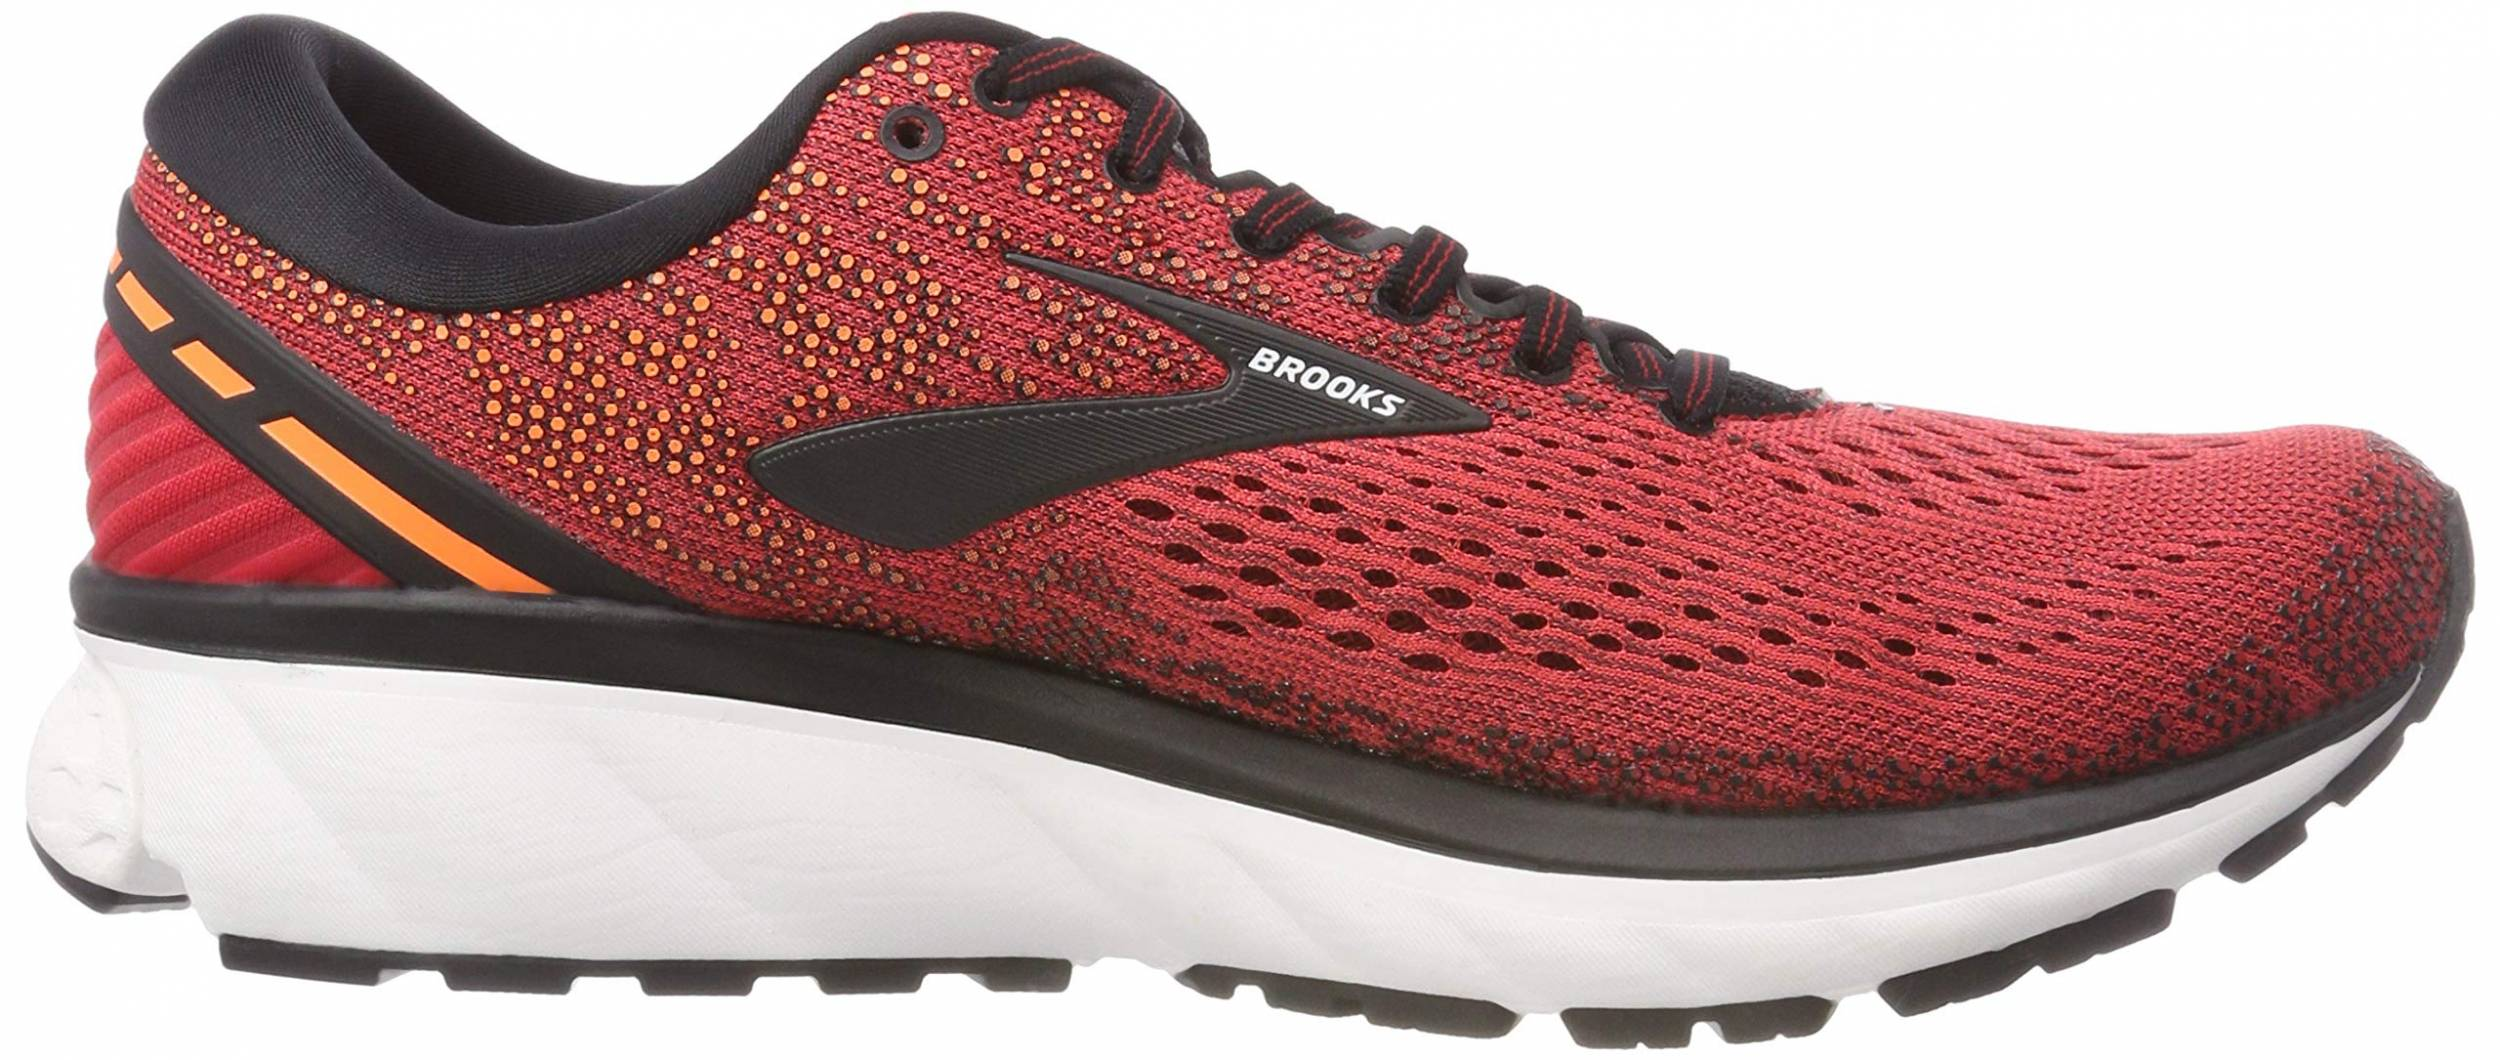 Save 26% on Red Brooks Running Shoes